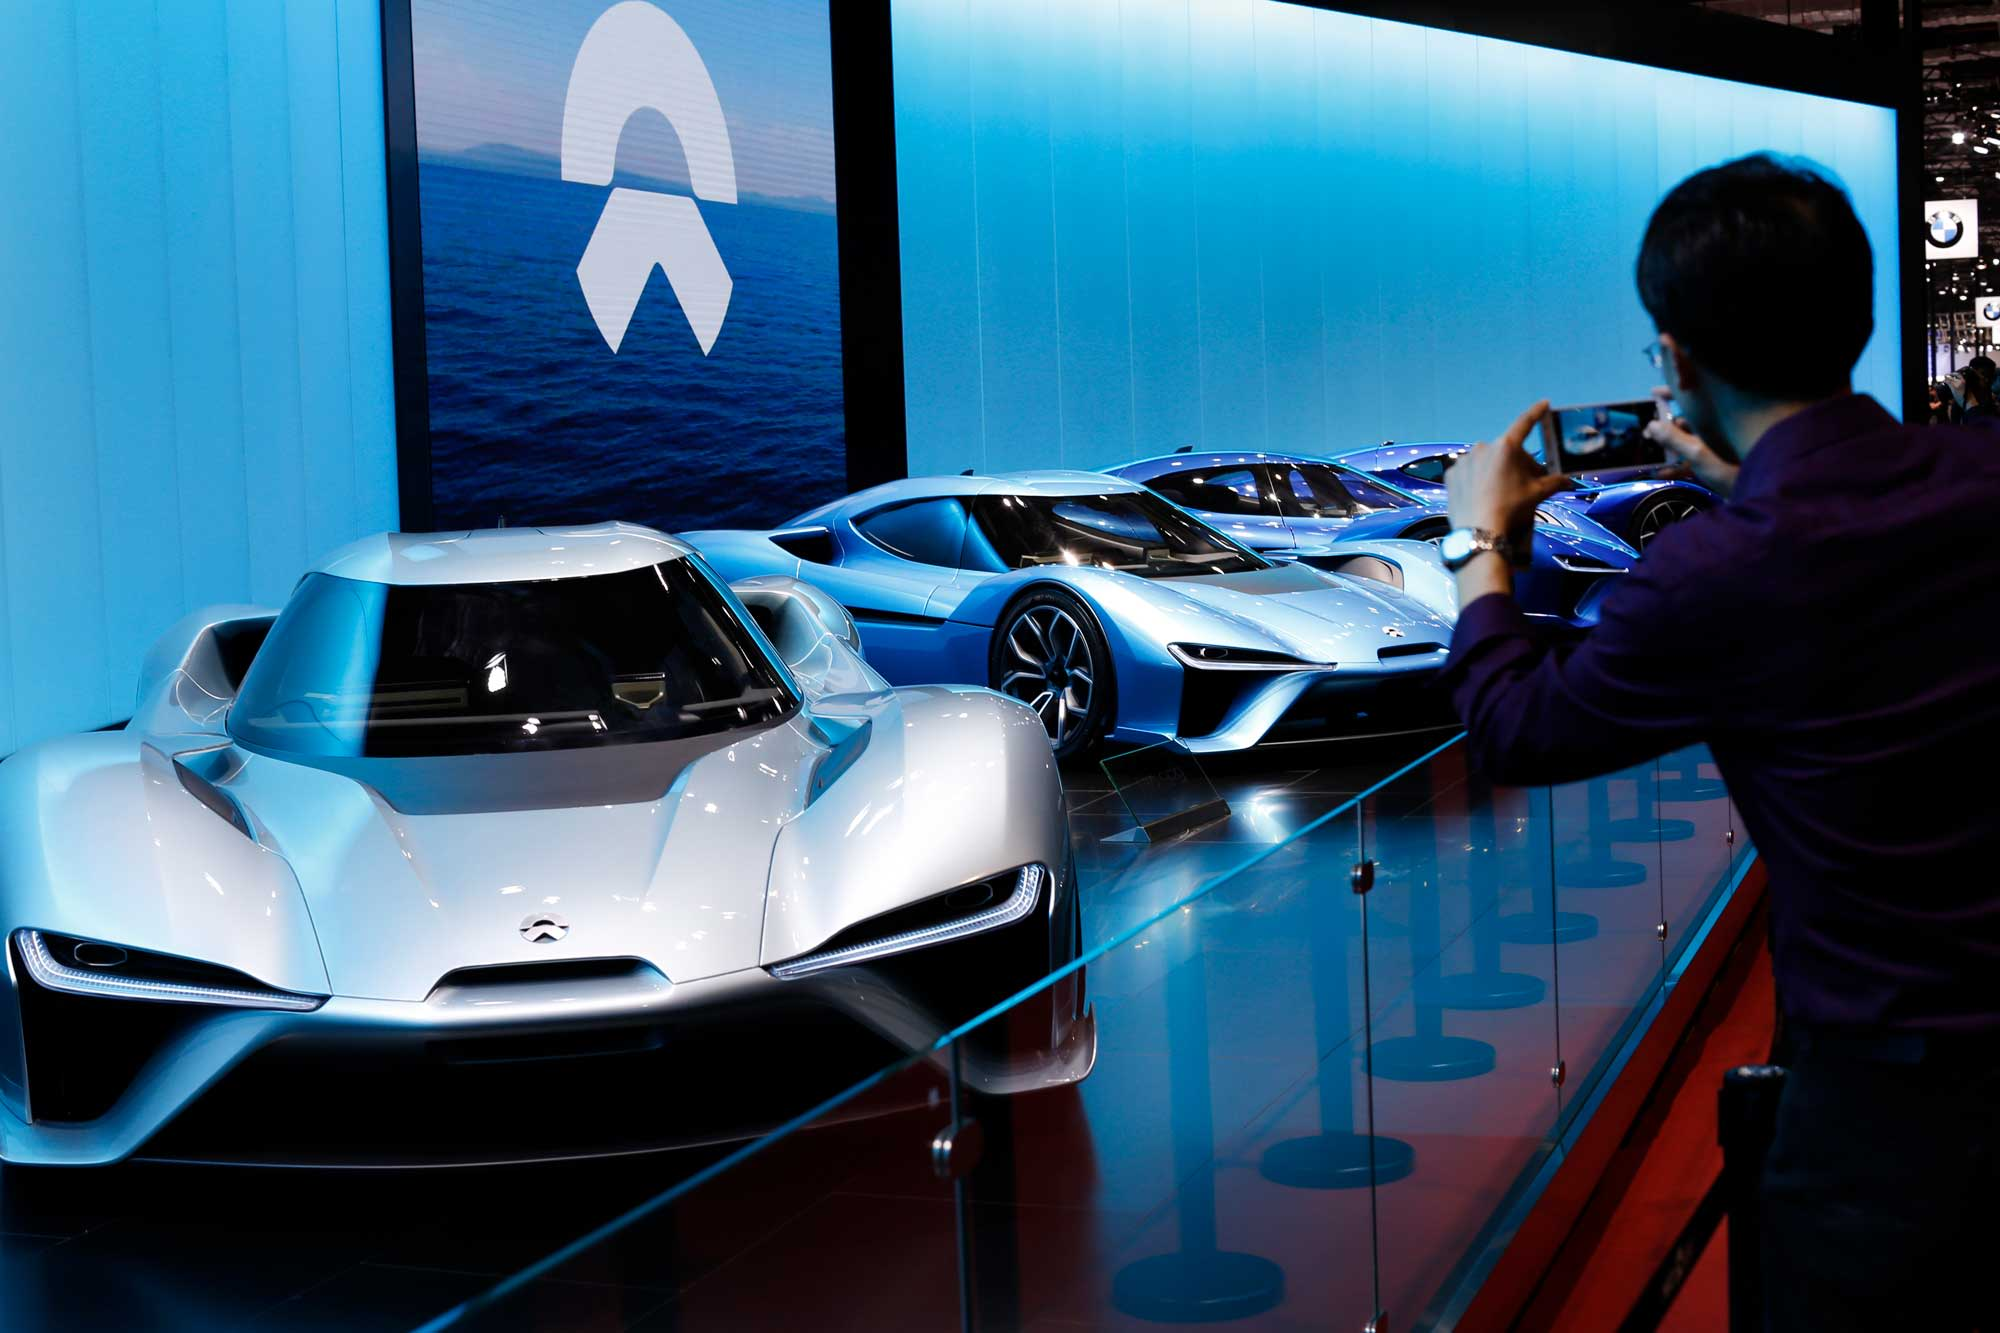 The Nio EP9 self-driving concept electric vehicle (EV) is displayed during the media day of 17th Shanghai International Automobile Industry Exhibition on April 19, 2017 in Shanghai, China.